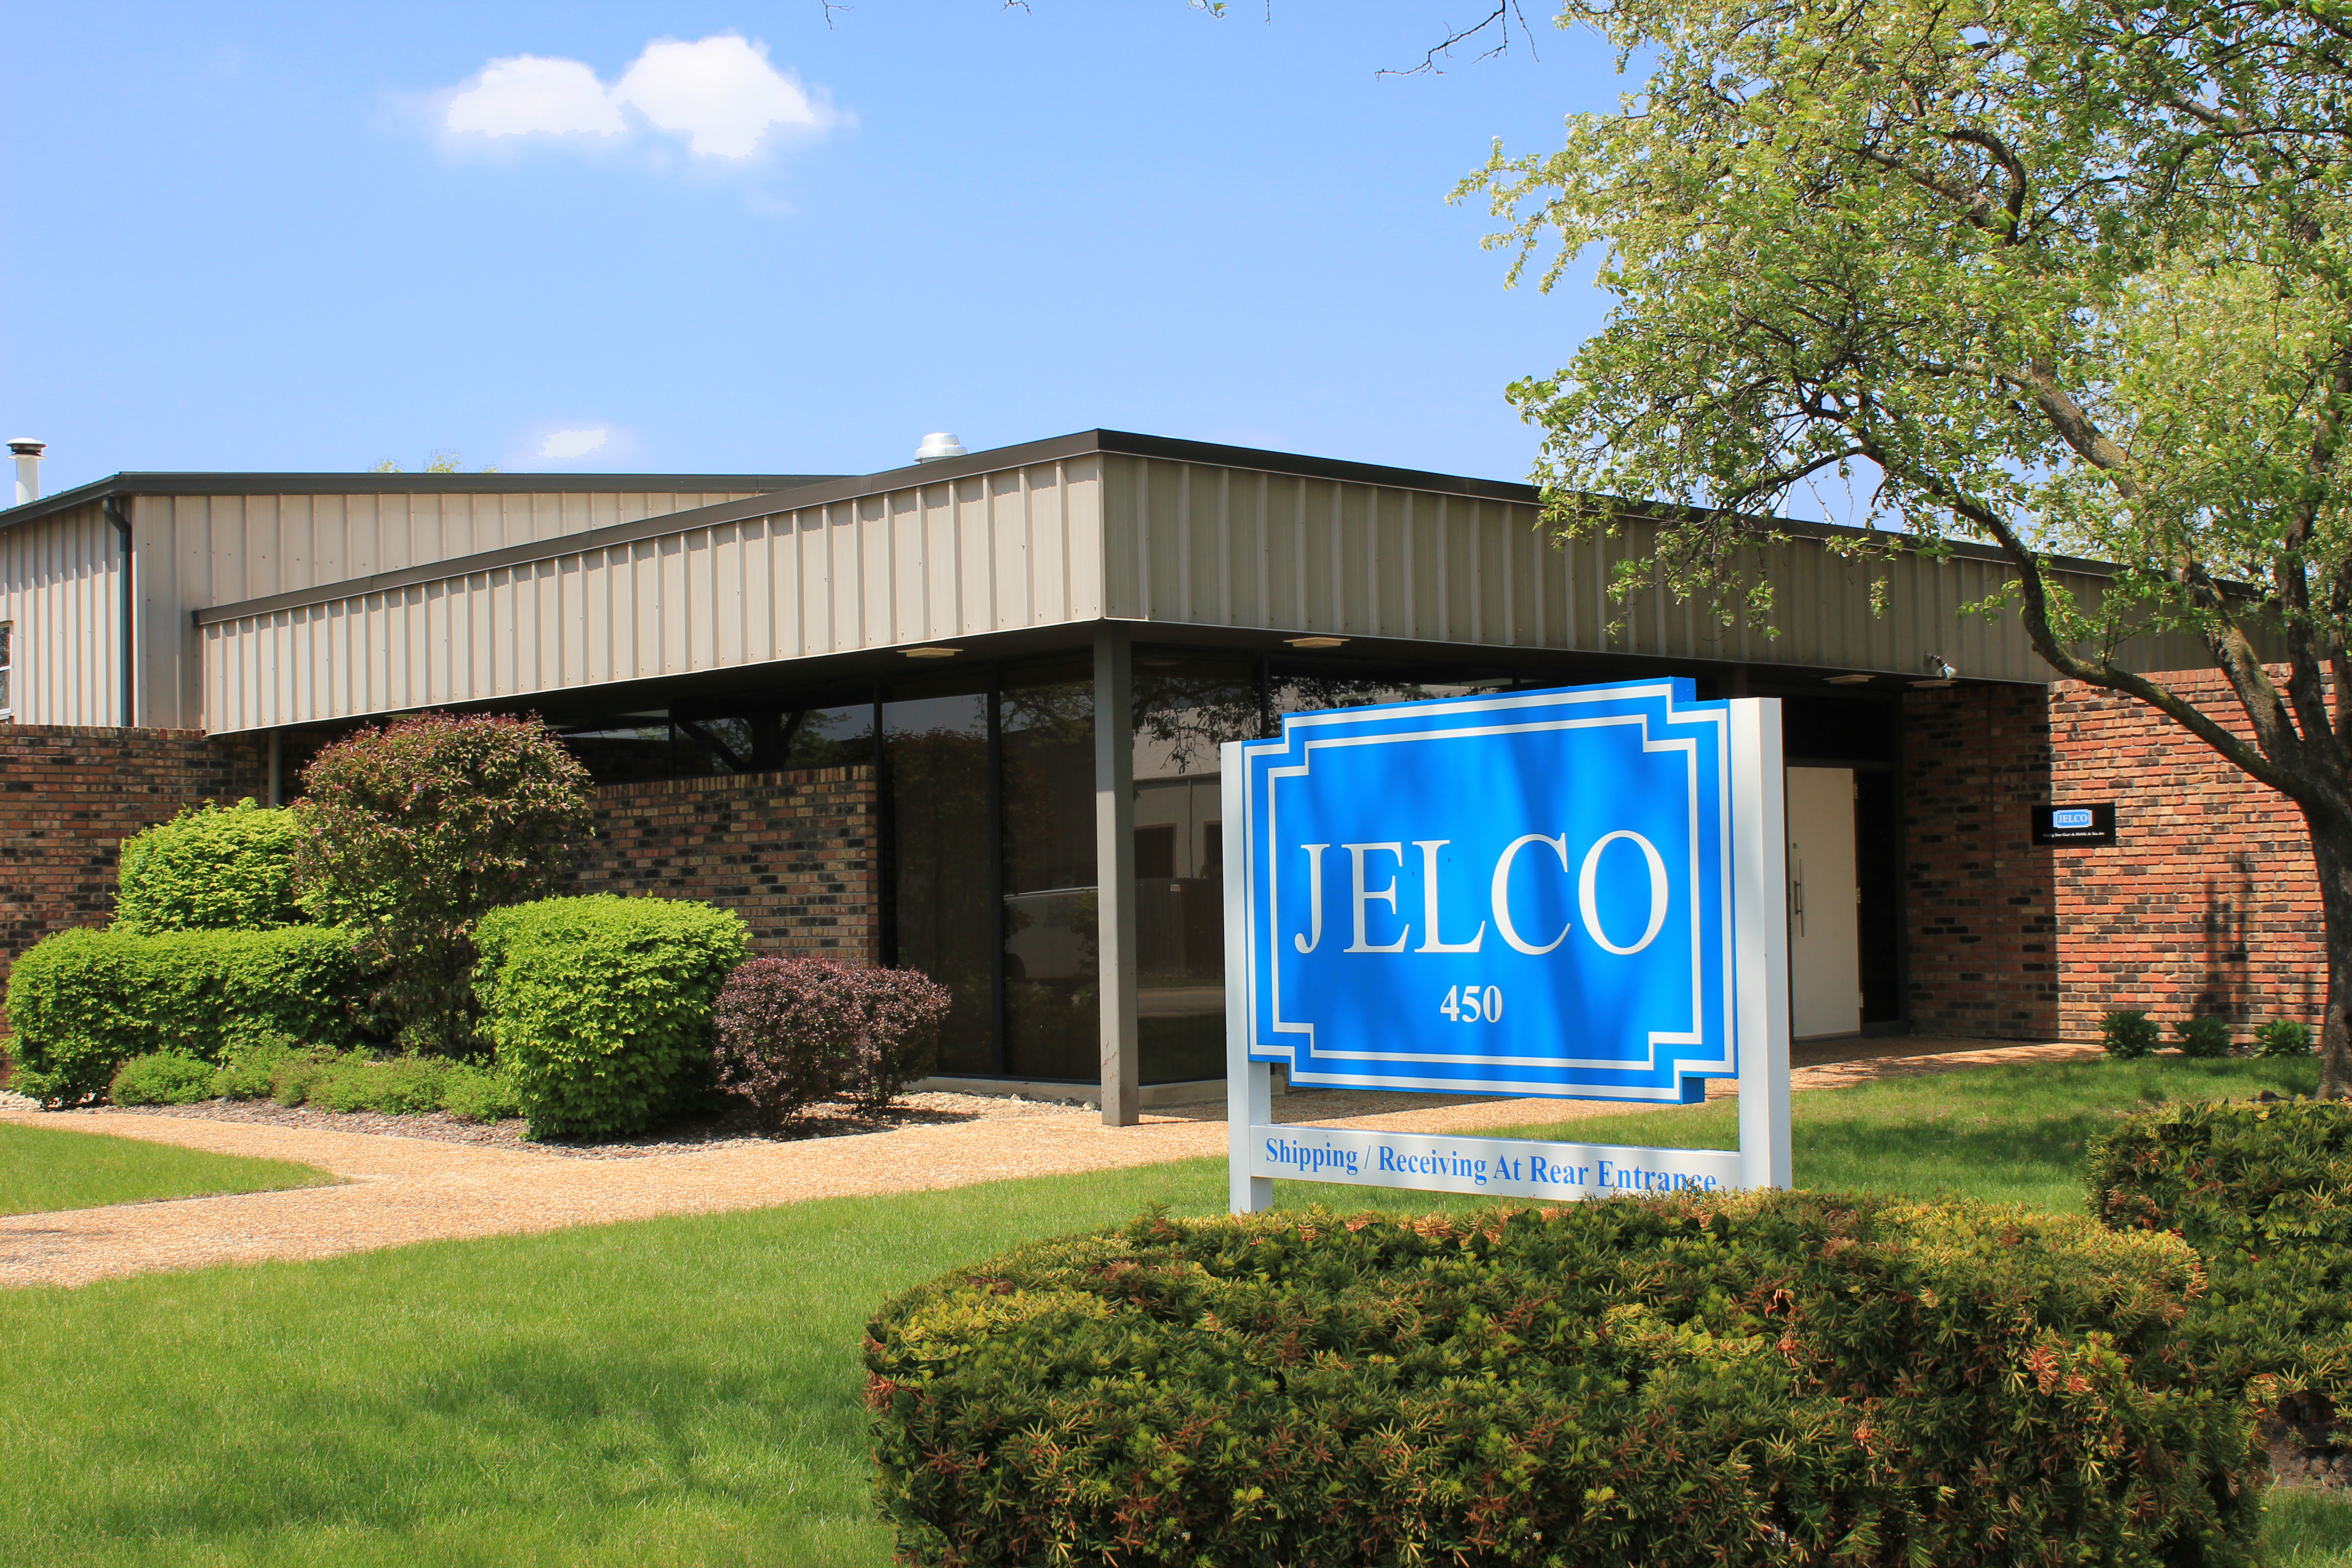 a-jelco-corporate-small.jpg